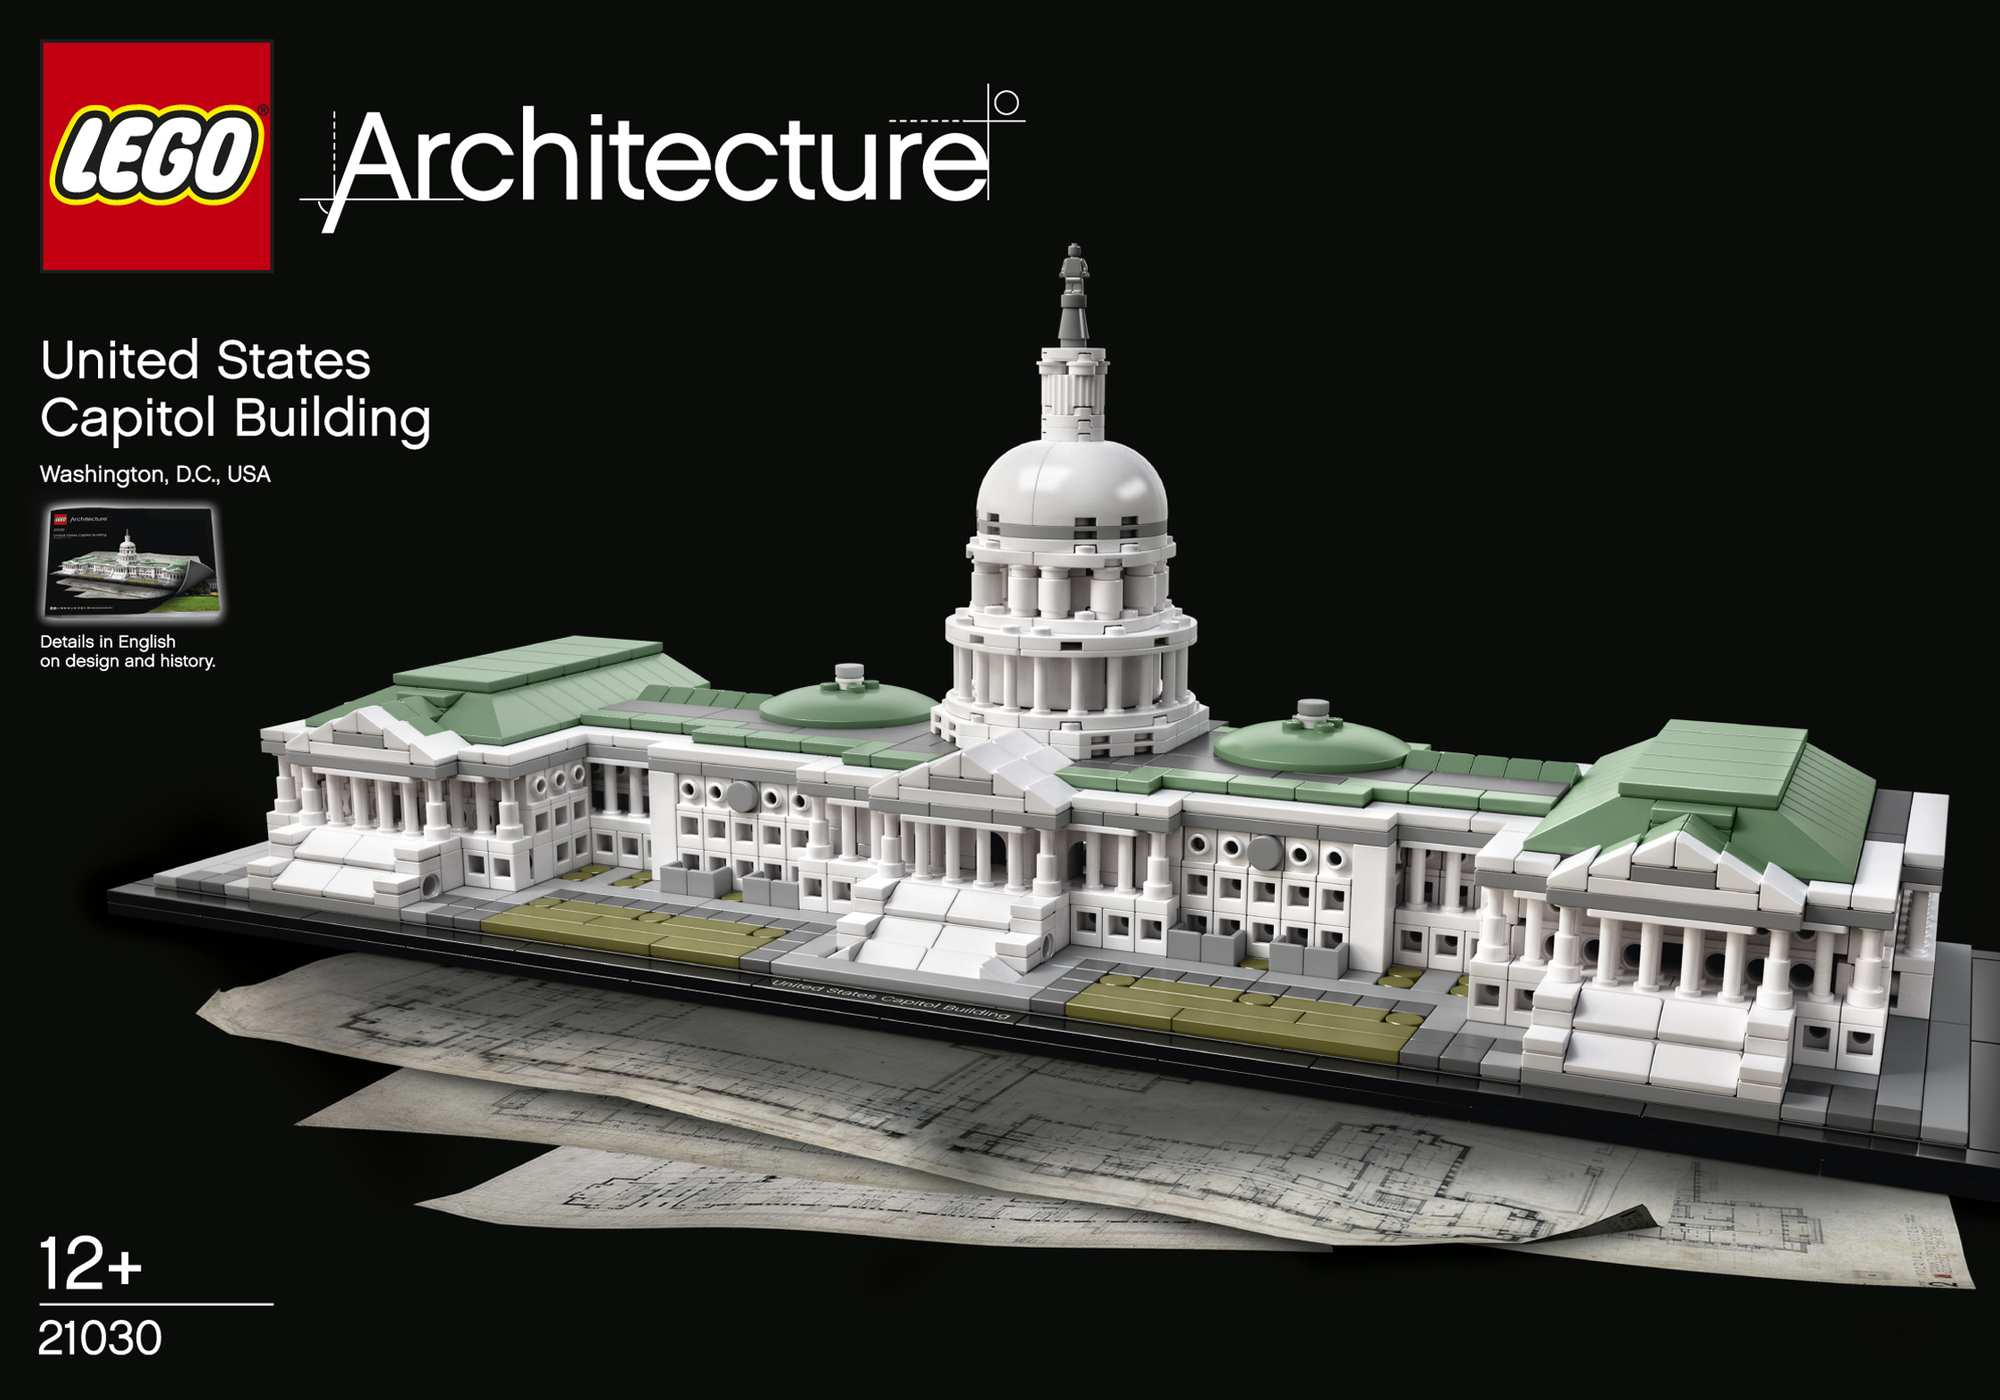 The Latest LEGO Architecture Set The US Capitol Building - Why no google maps 3d for us capitol